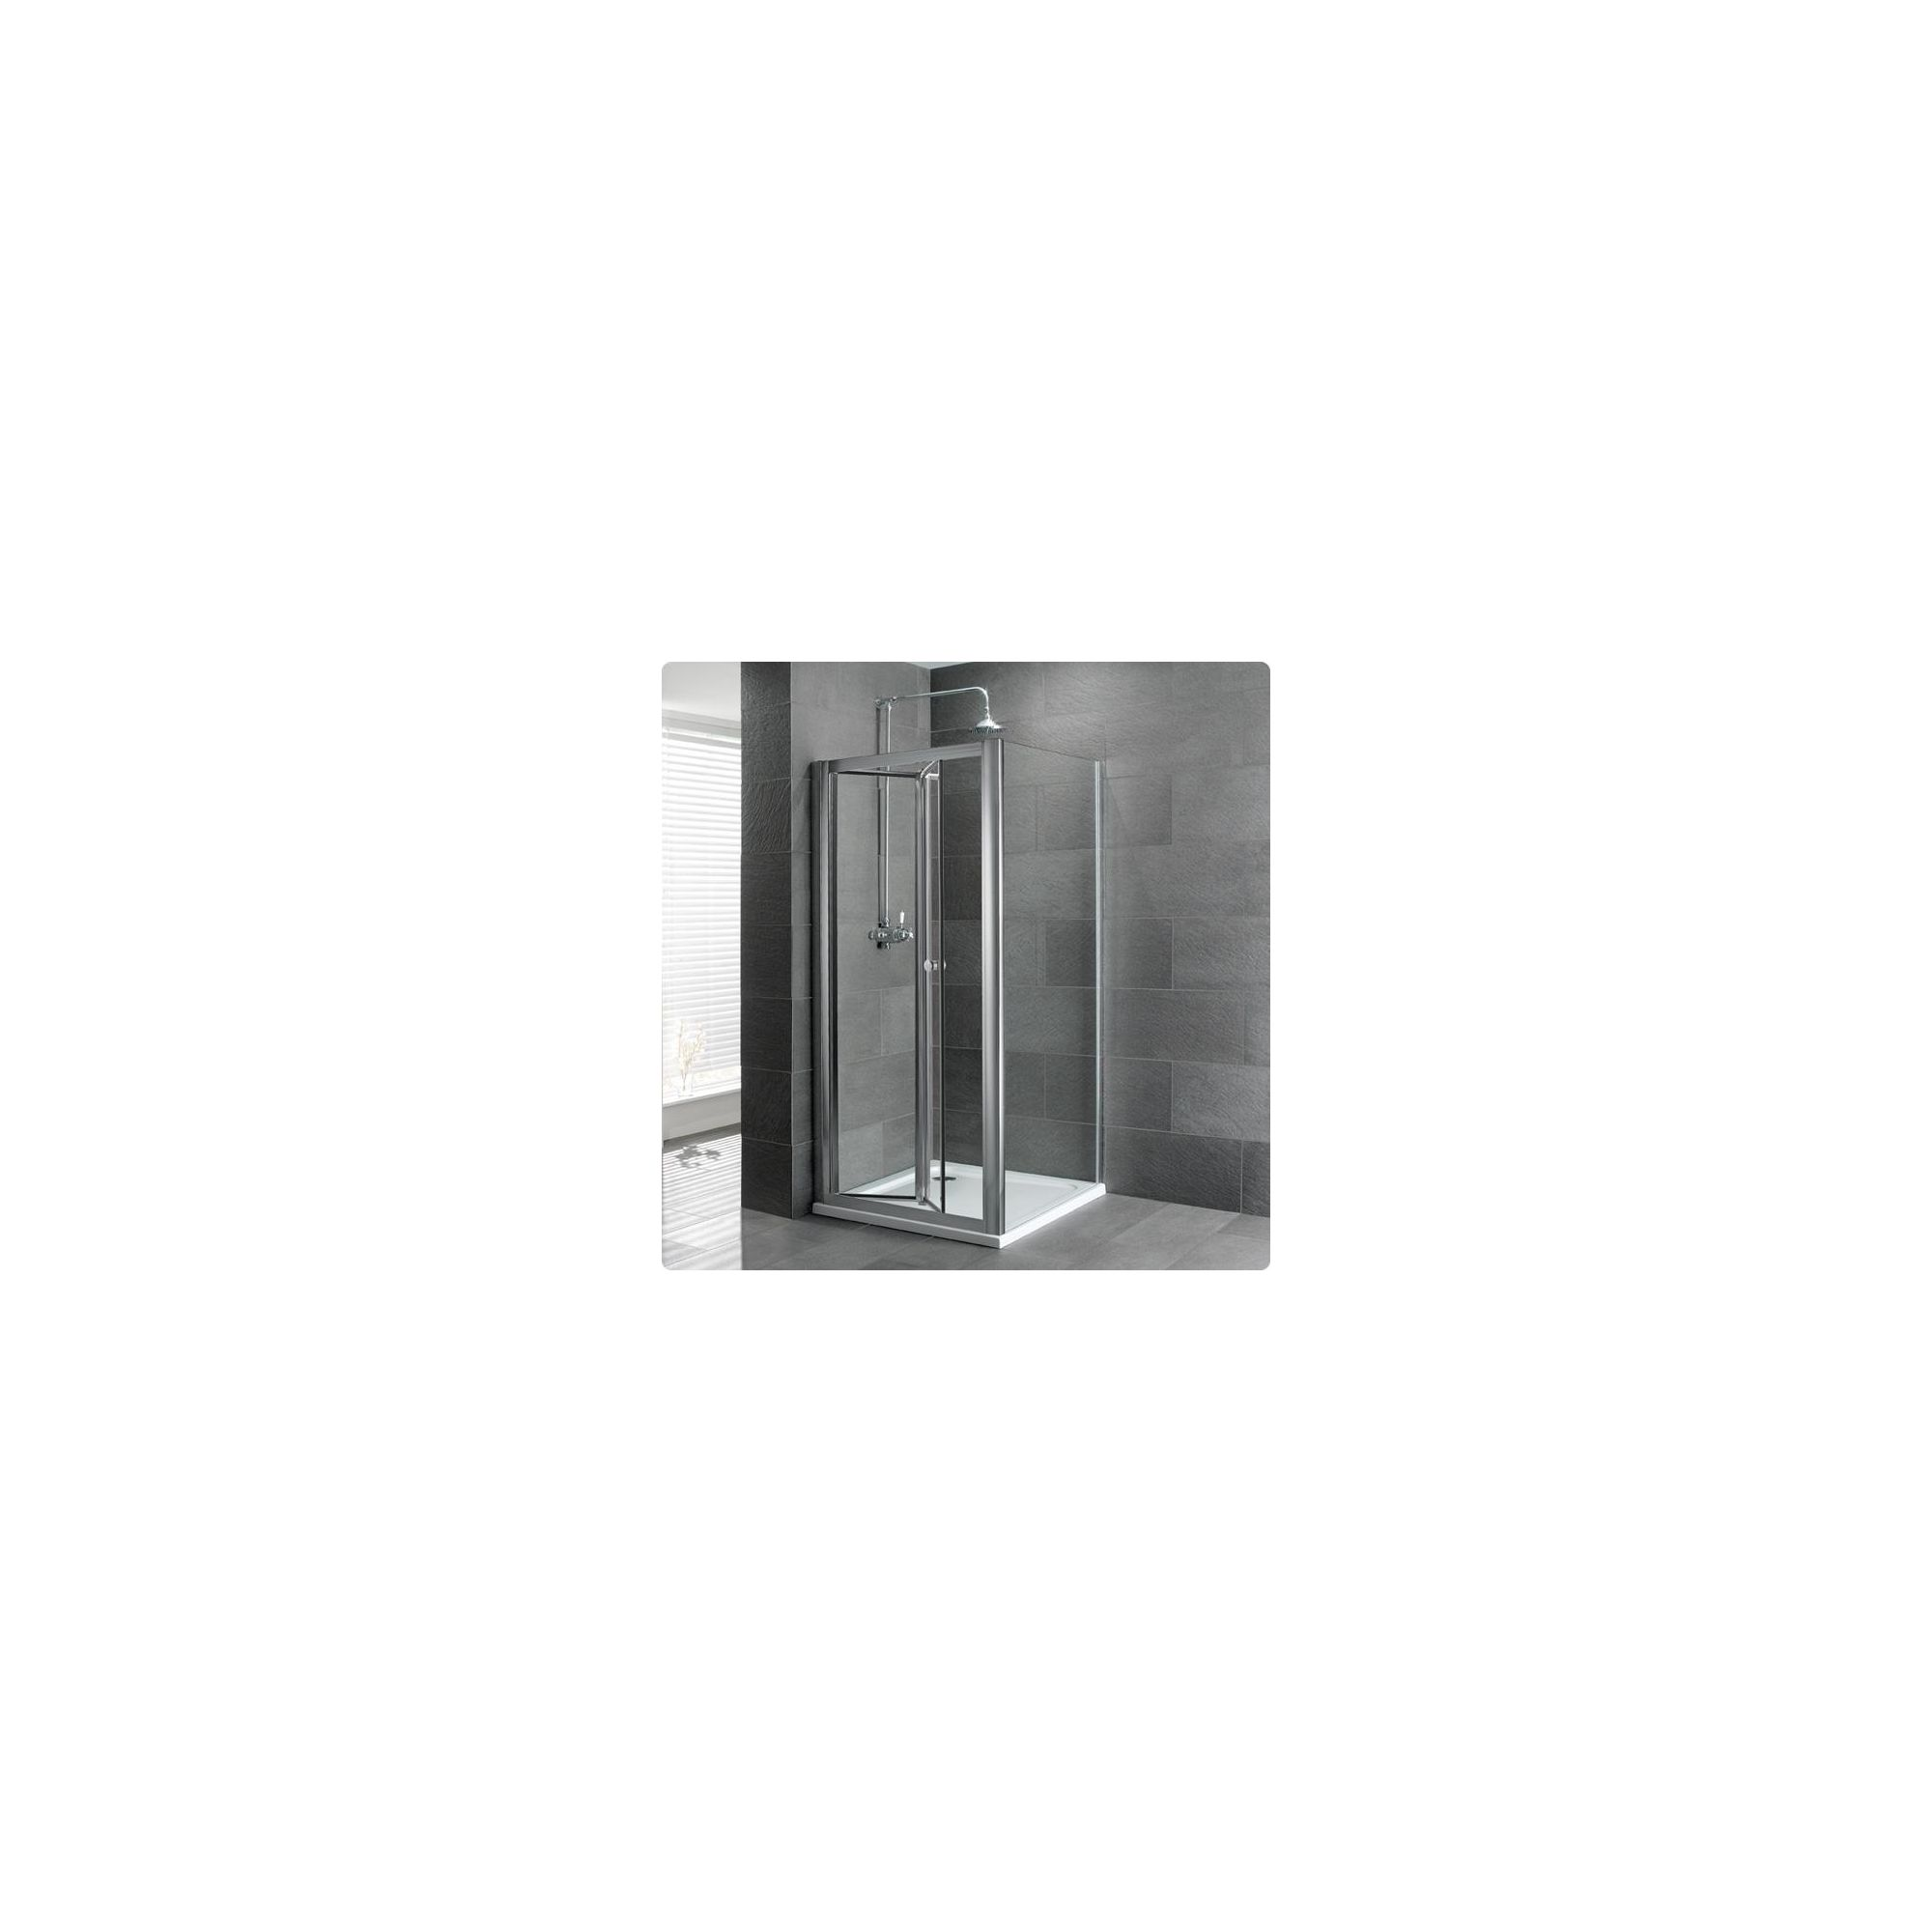 Duchy Select Silver Bi-Fold Door Shower Enclosure, 1000mm x 760mm, Standard Tray, 6mm Glass at Tesco Direct